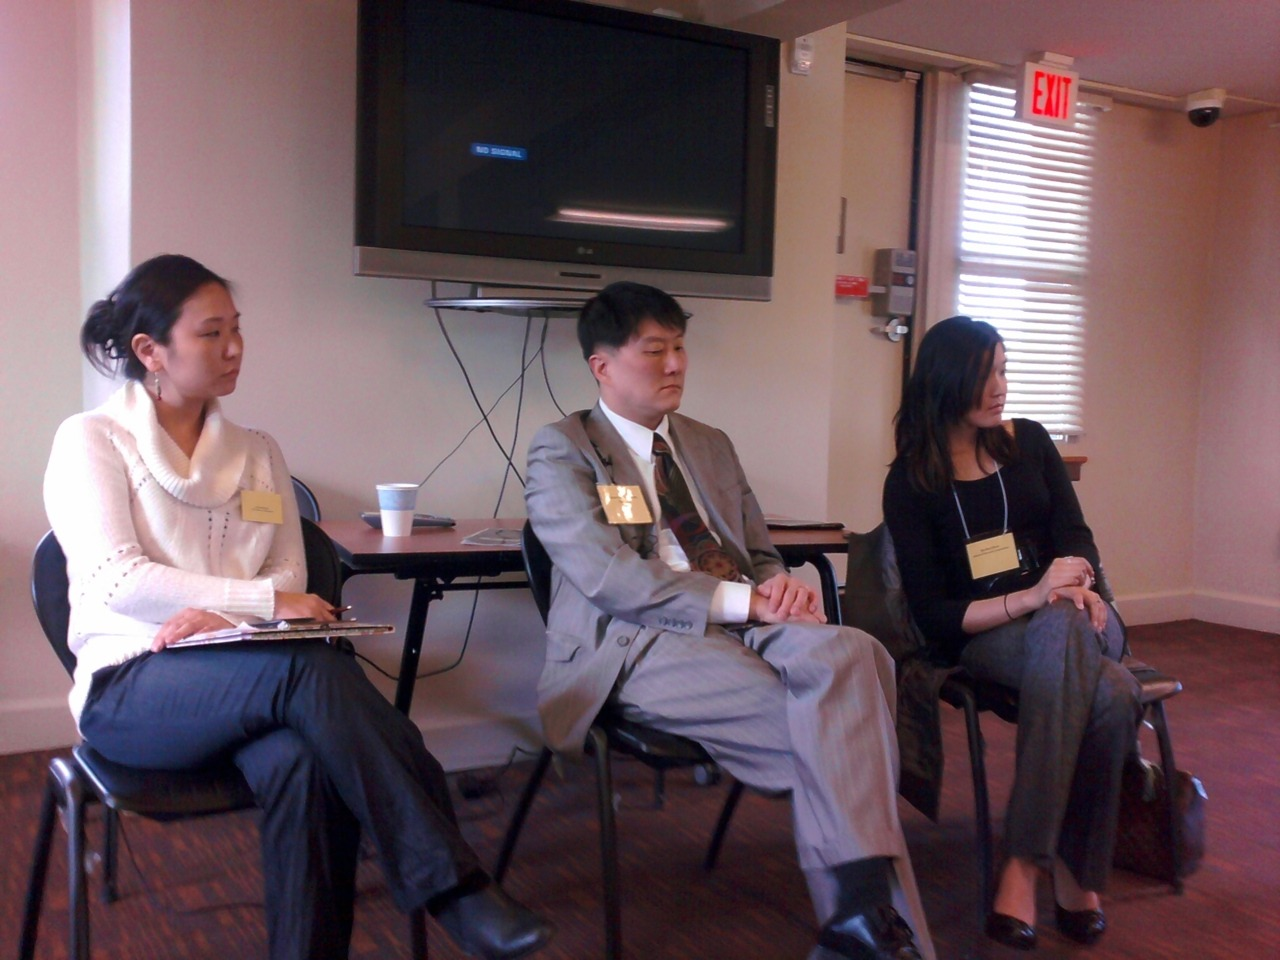 Korean Adoptees from the Out of the Margins: Asian American Movement Building Conference which was held at the University of Michigan in Ann Arbor, Michigan.  Starting on the left are Rachel Sisco, Senator Hoon-Yung Hopgood who was elected to represent the Downriver communities of Southeast Michigan following three terms in the Michigan state assembly, and the last girl I cannot recall her name since it is not listed.   All shared their stories as adoptees which varied; however, they all share the same idea that as international adoptees, introduction to cultural heritage is important when an adoptee needs exposure to discussions about race, discrimination and prejudice and know how to respond positively.